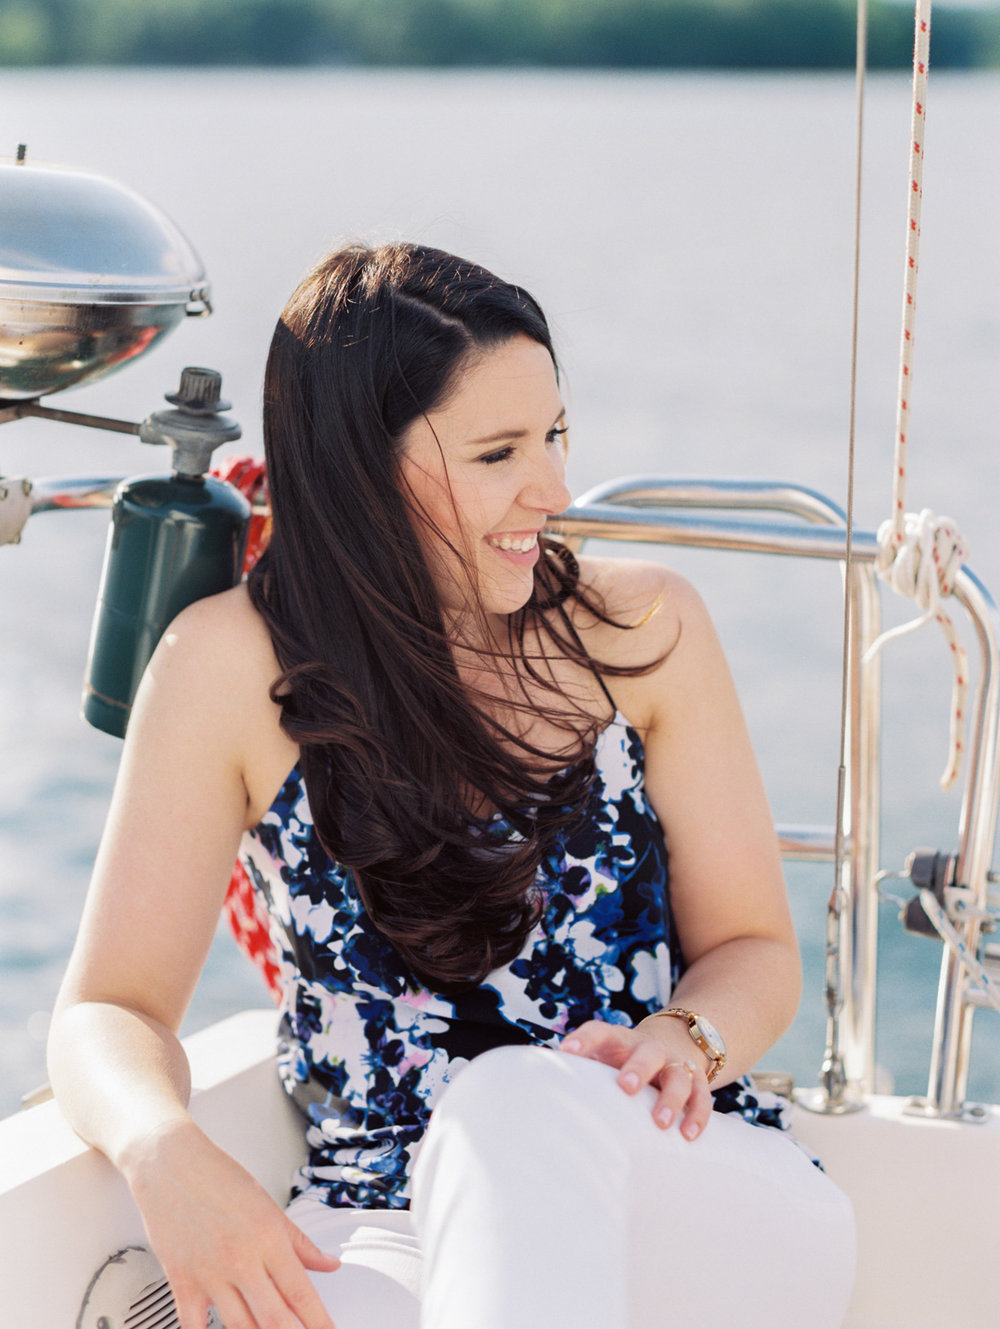 smith-mountain-lake-sailboat-engagement-session-charlotte-sailing-photographer-17.jpg